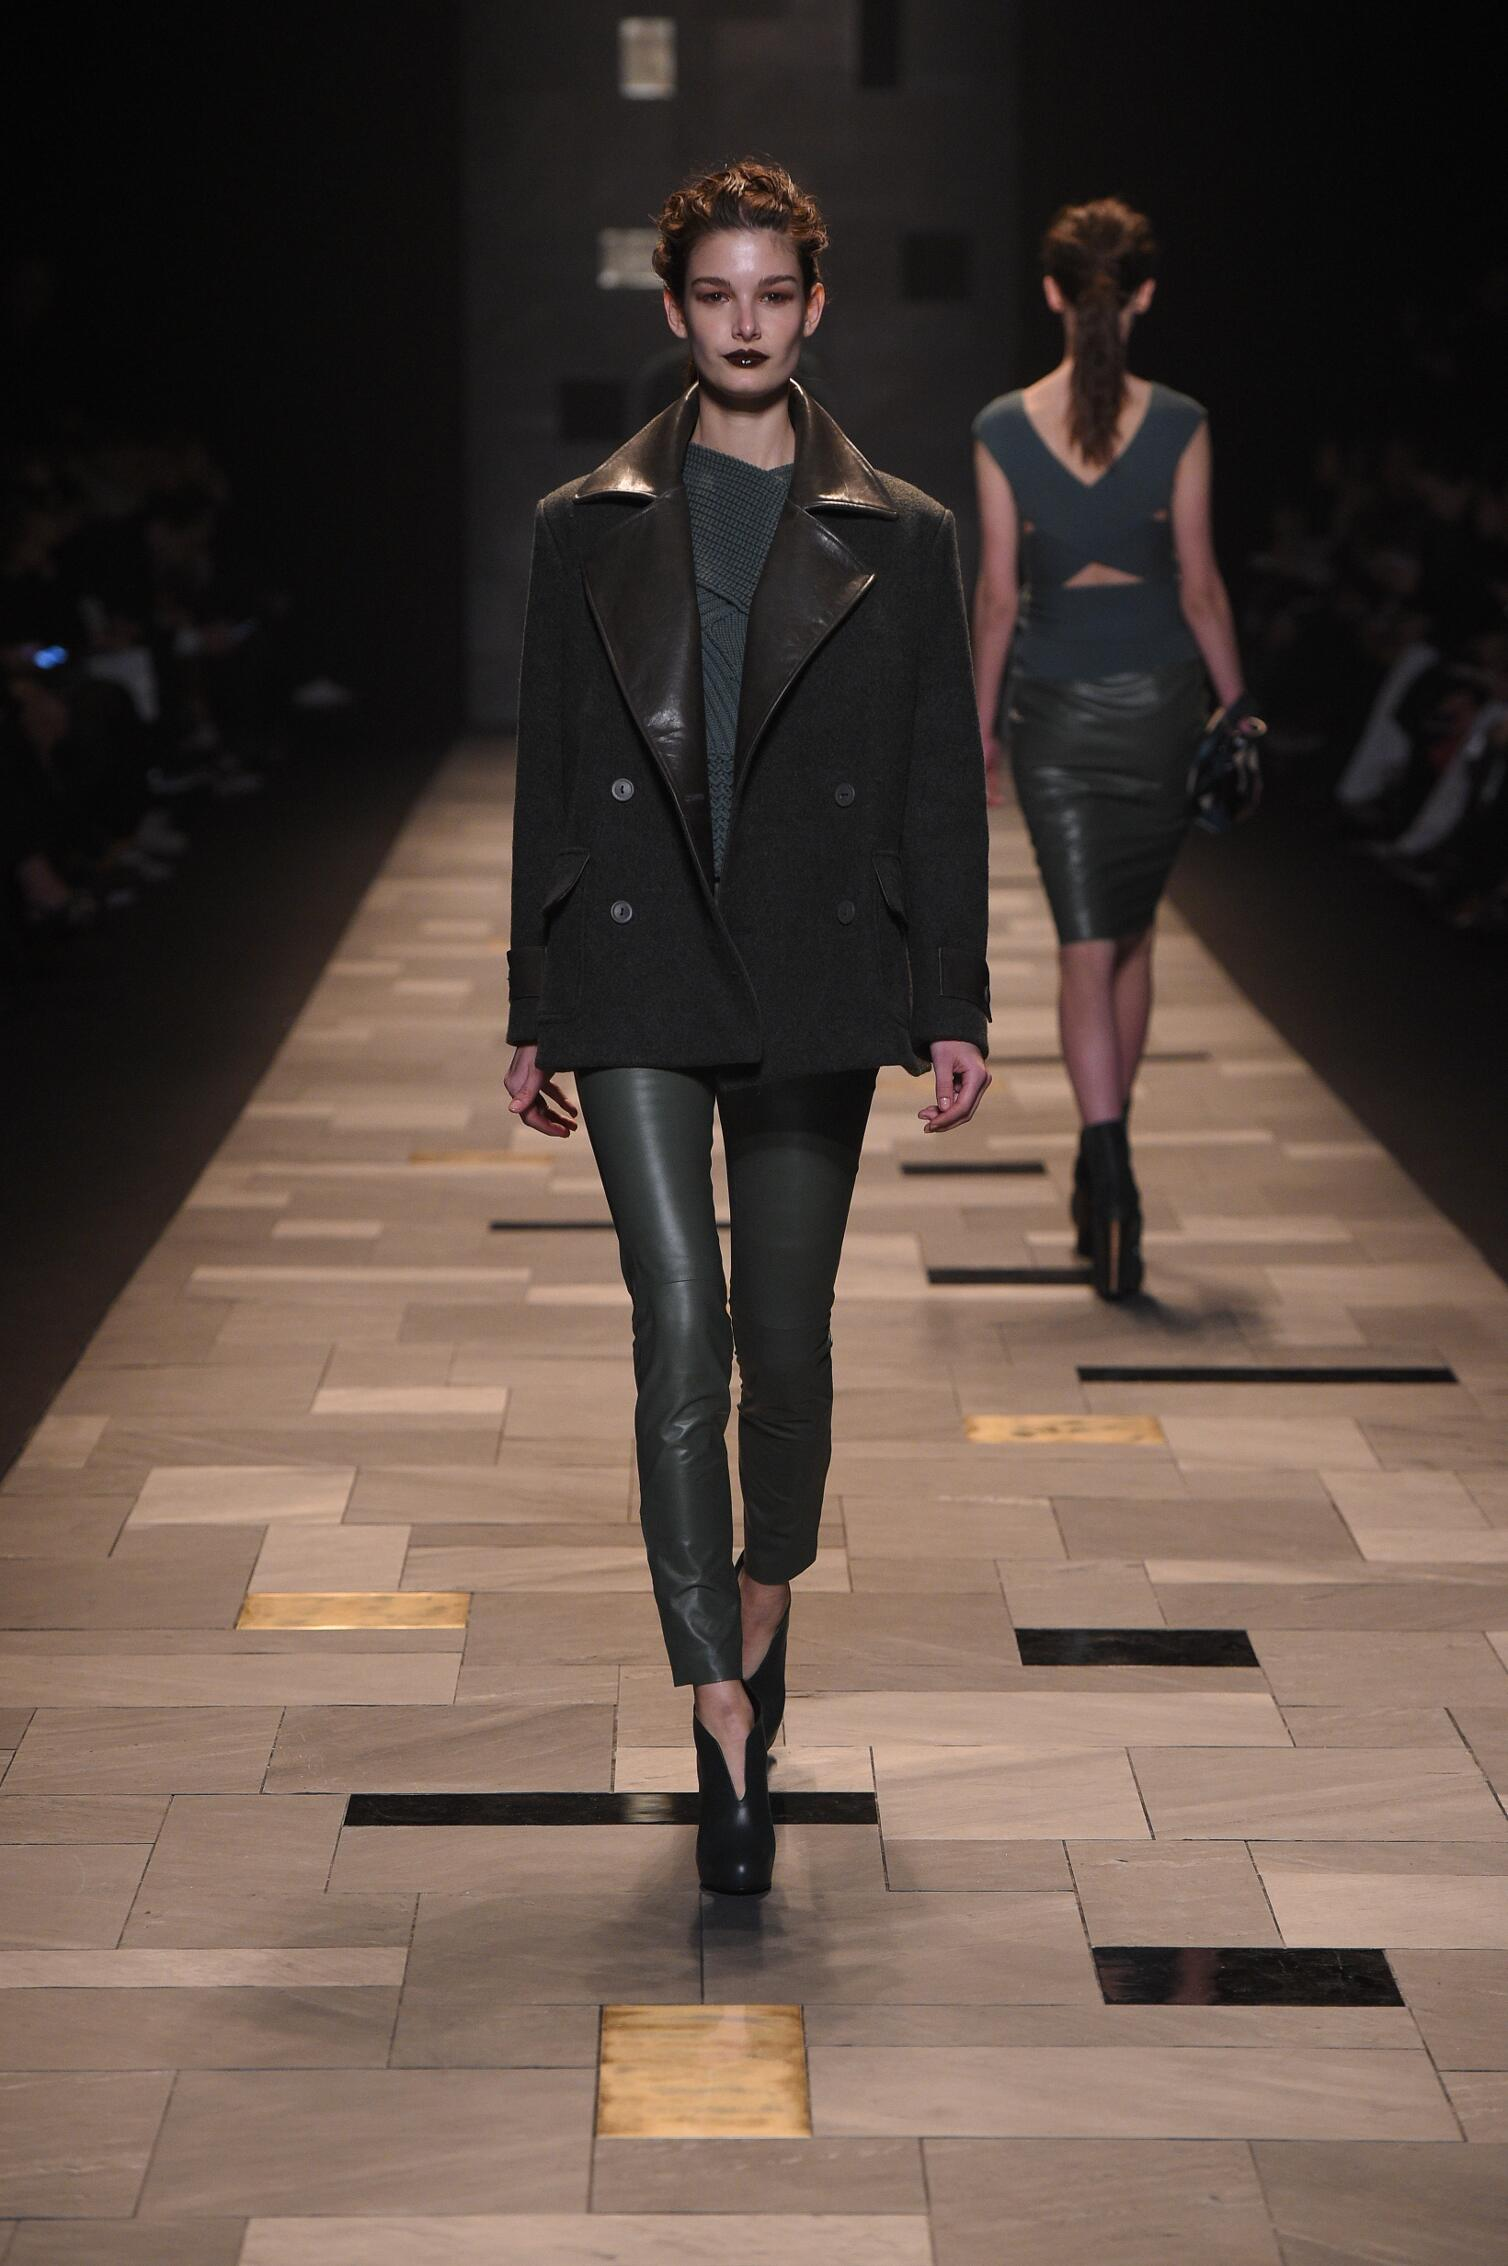 Catwalk Trussardi Collection Fashion Show Winter 2015